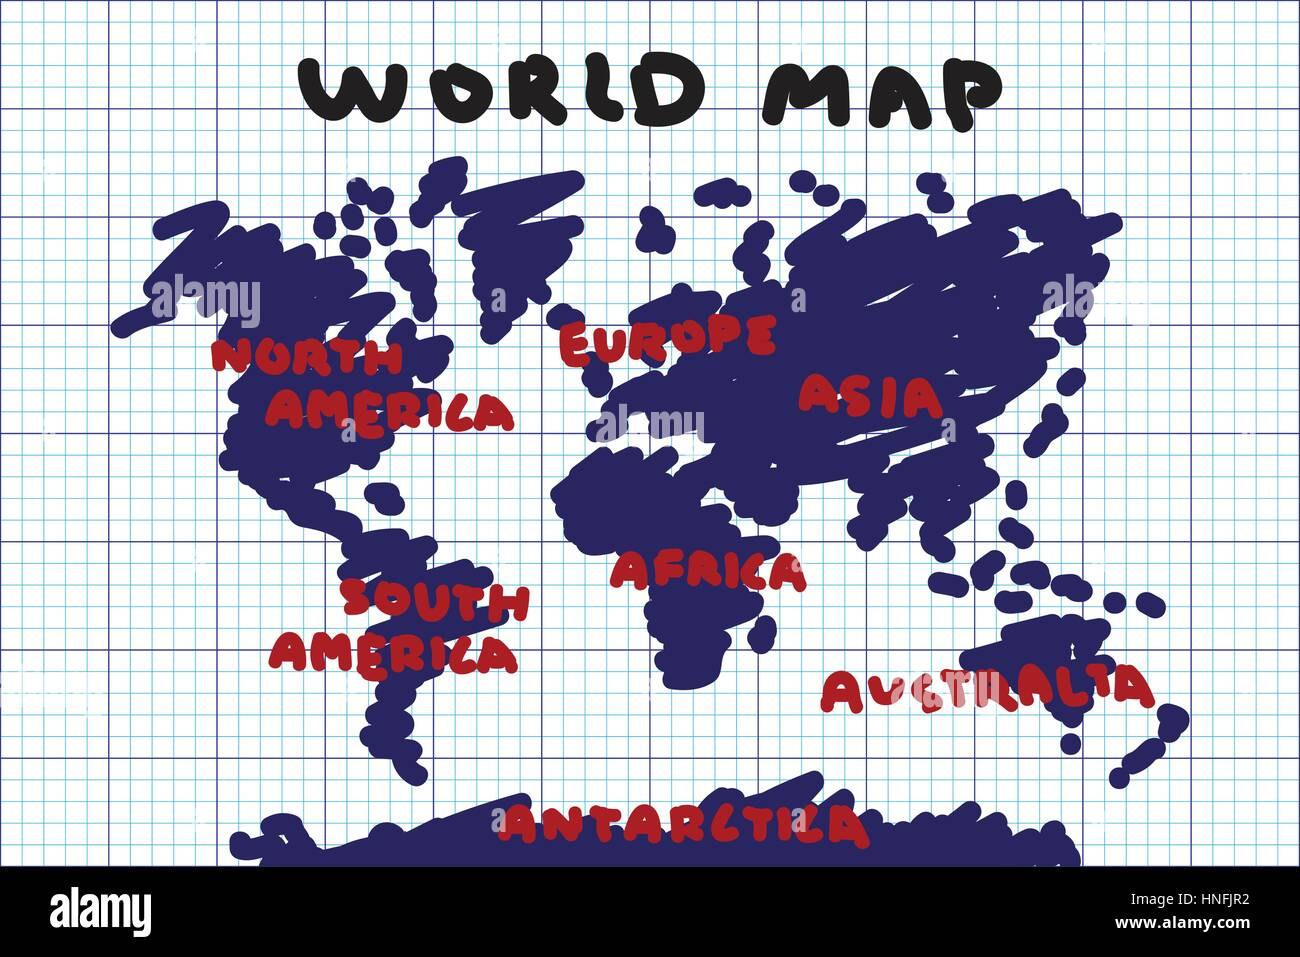 Freehand drawing style of world map and continent on grid paper freehand drawing style of world map and continent on grid paper gumiabroncs Gallery